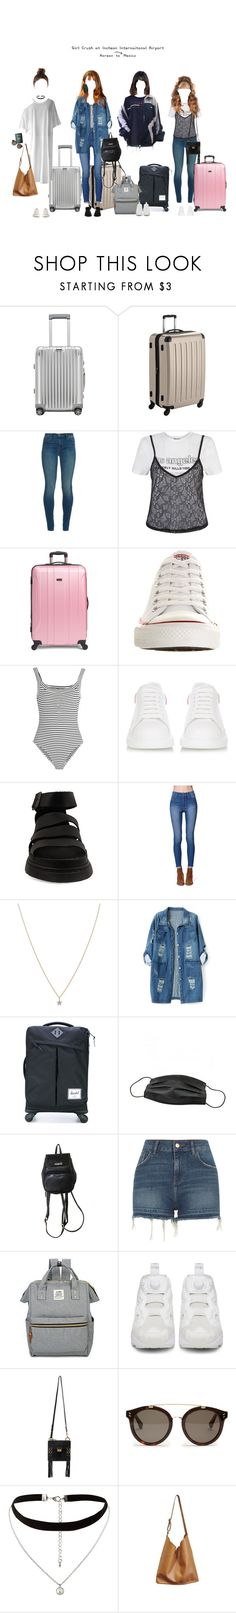 """""""GC: At Incheon Airport Flying to Mexico for KCON."""" by girlcrush-official ❤ liked on Polyvore featuring Rimowa, J Brand, Converse, Topshop Unique, Alexander McQueen, Dr. Martens, Bullhead Denim Co., Missoma, Chicnova Fashion and Herschel Supply Co."""